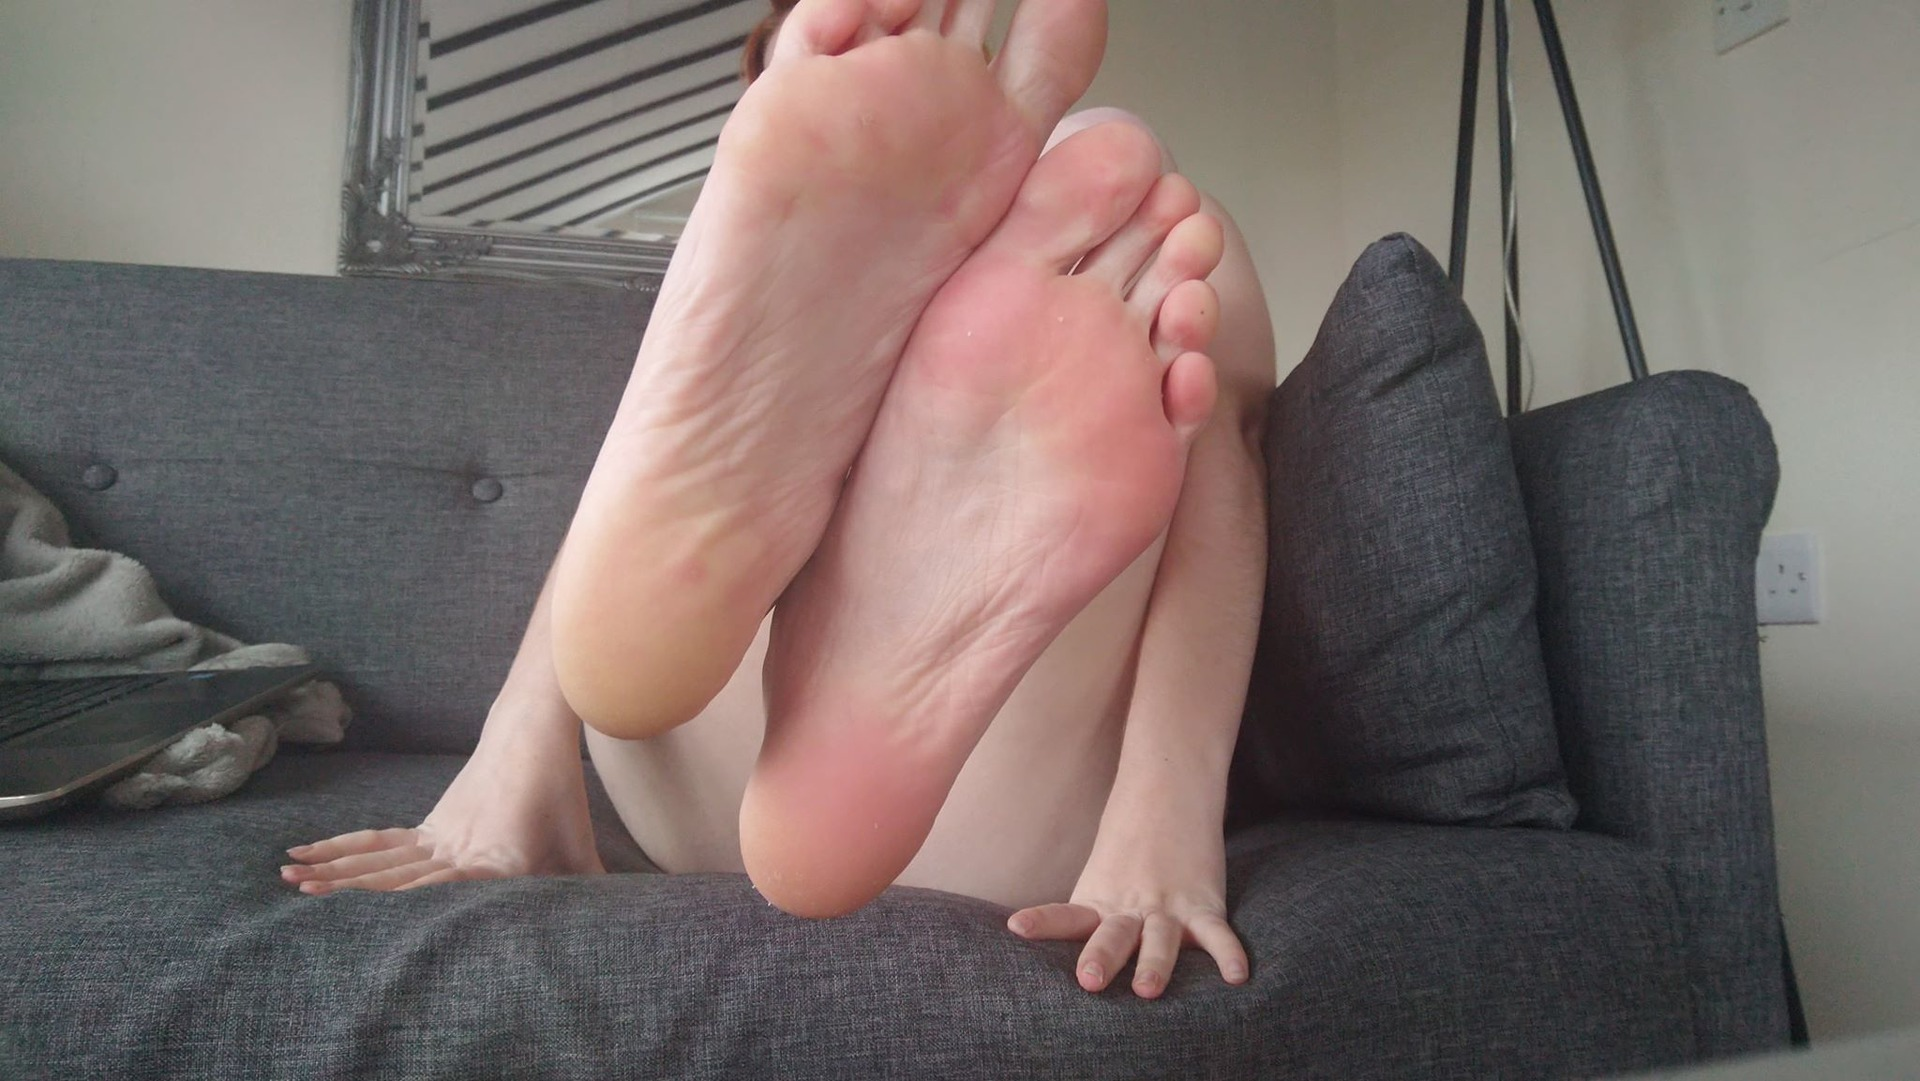 scarlett jones with the soles of her feet to the camera flexing her toes, pale skin and wrinkled soles